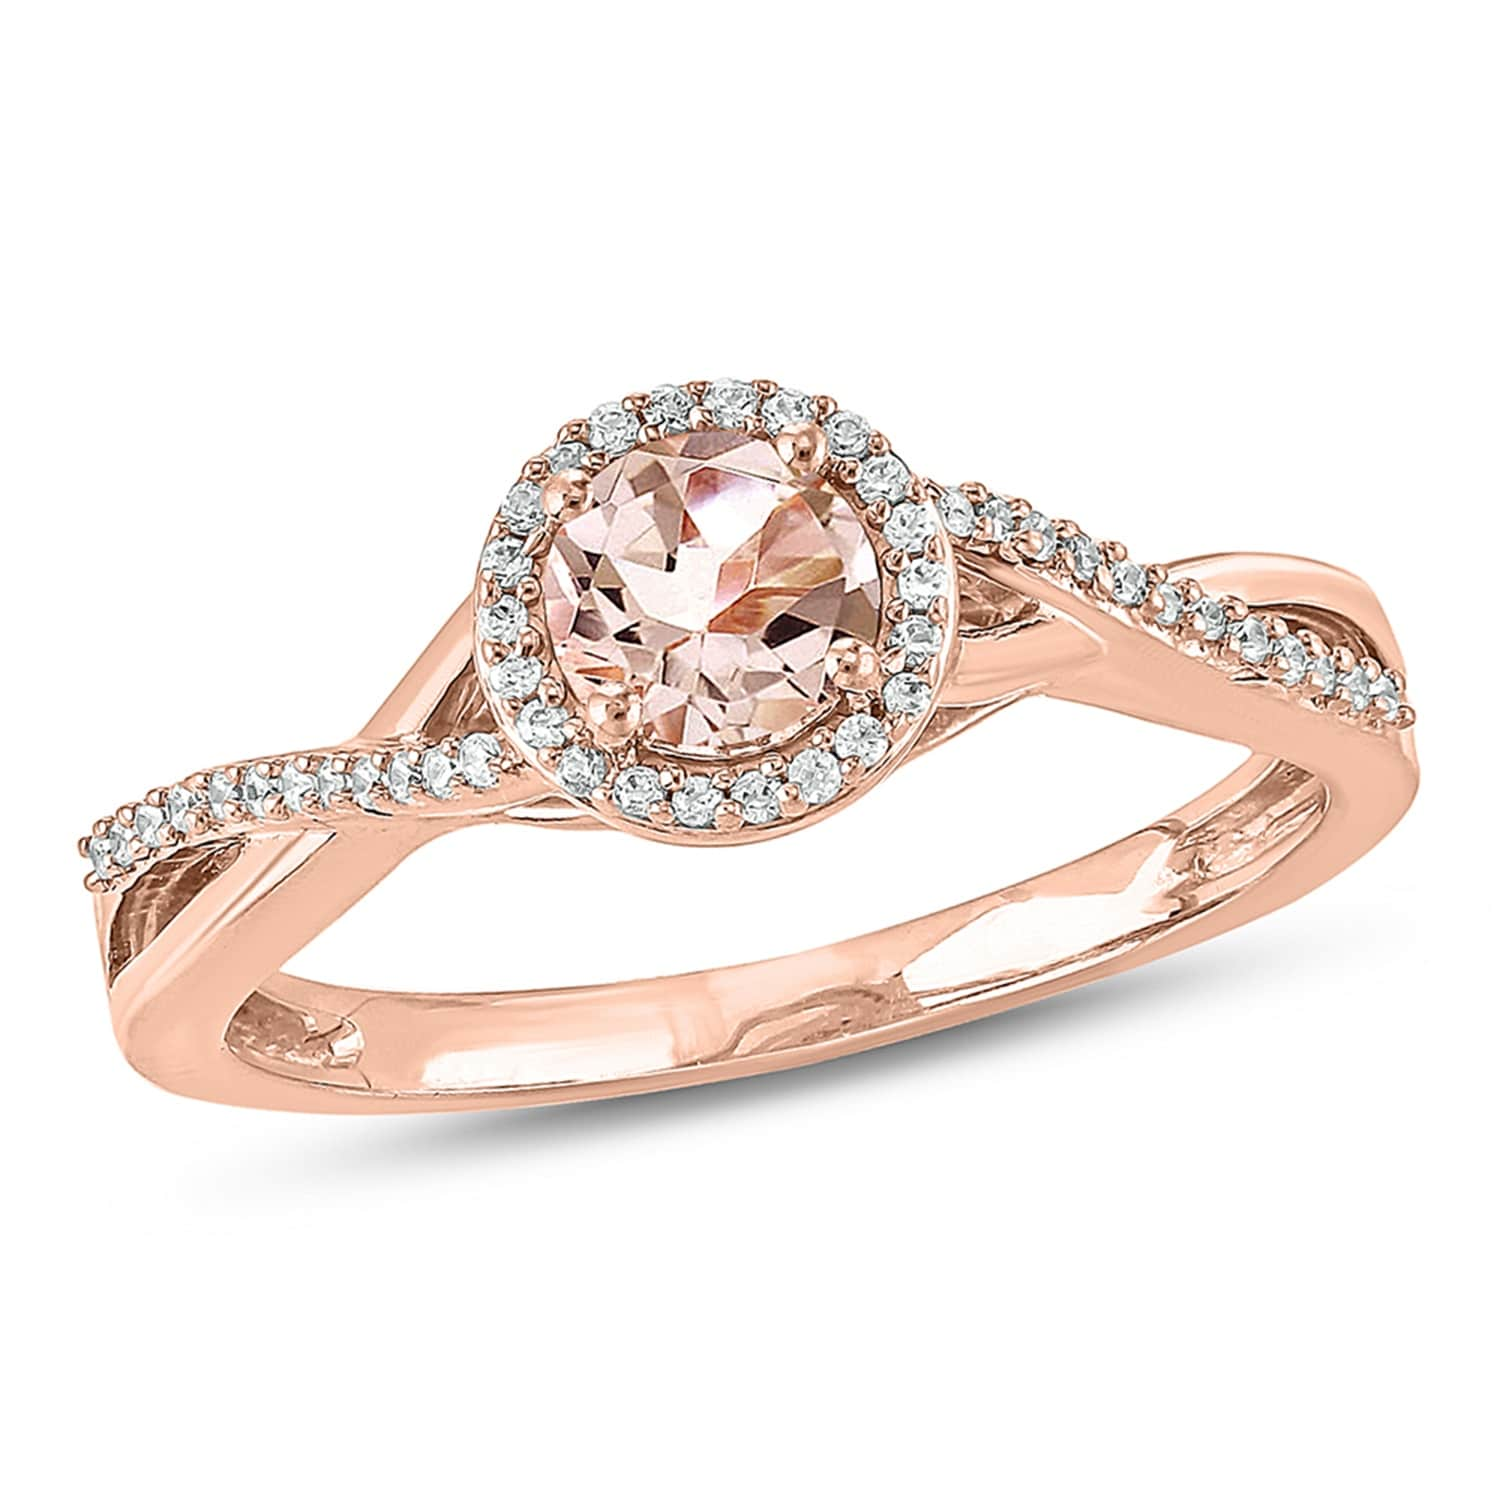 Diamond Wedding Band in 10K Pink Gold G-H,I2-I3 Size-5.25 1//10 cttw,